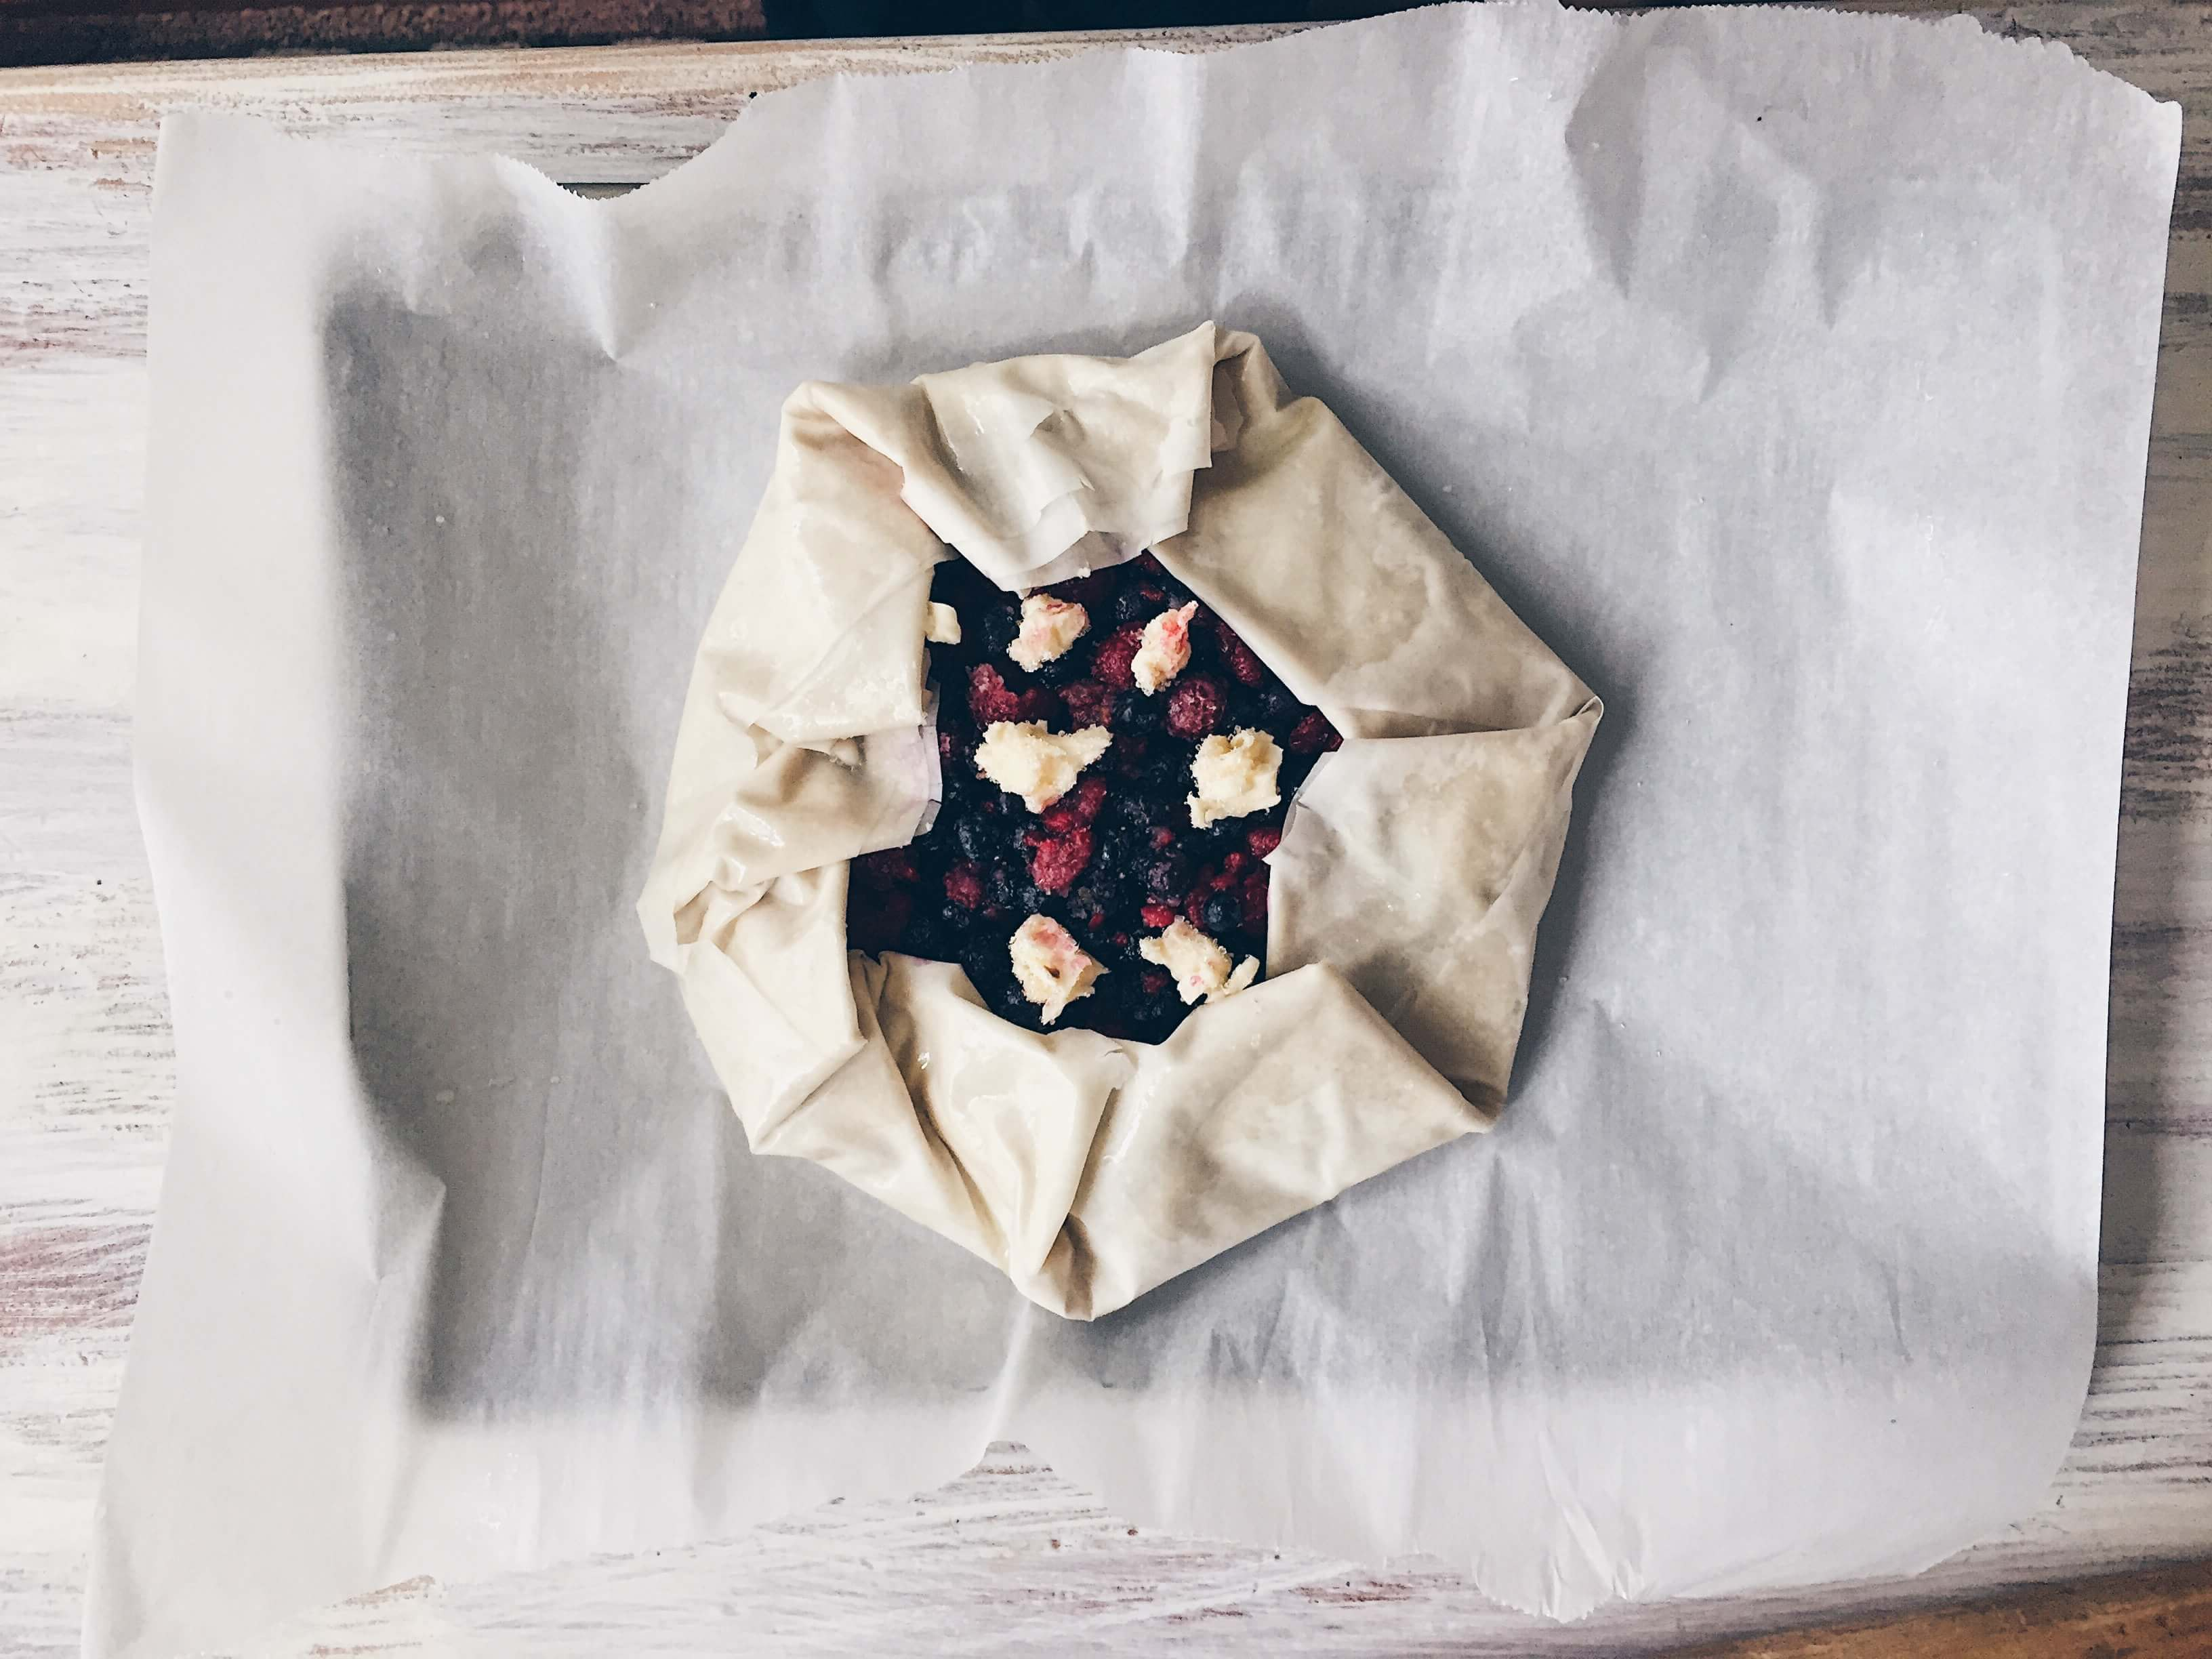 Mixed Berry Phyllo Galette folded. By The Messy Baker